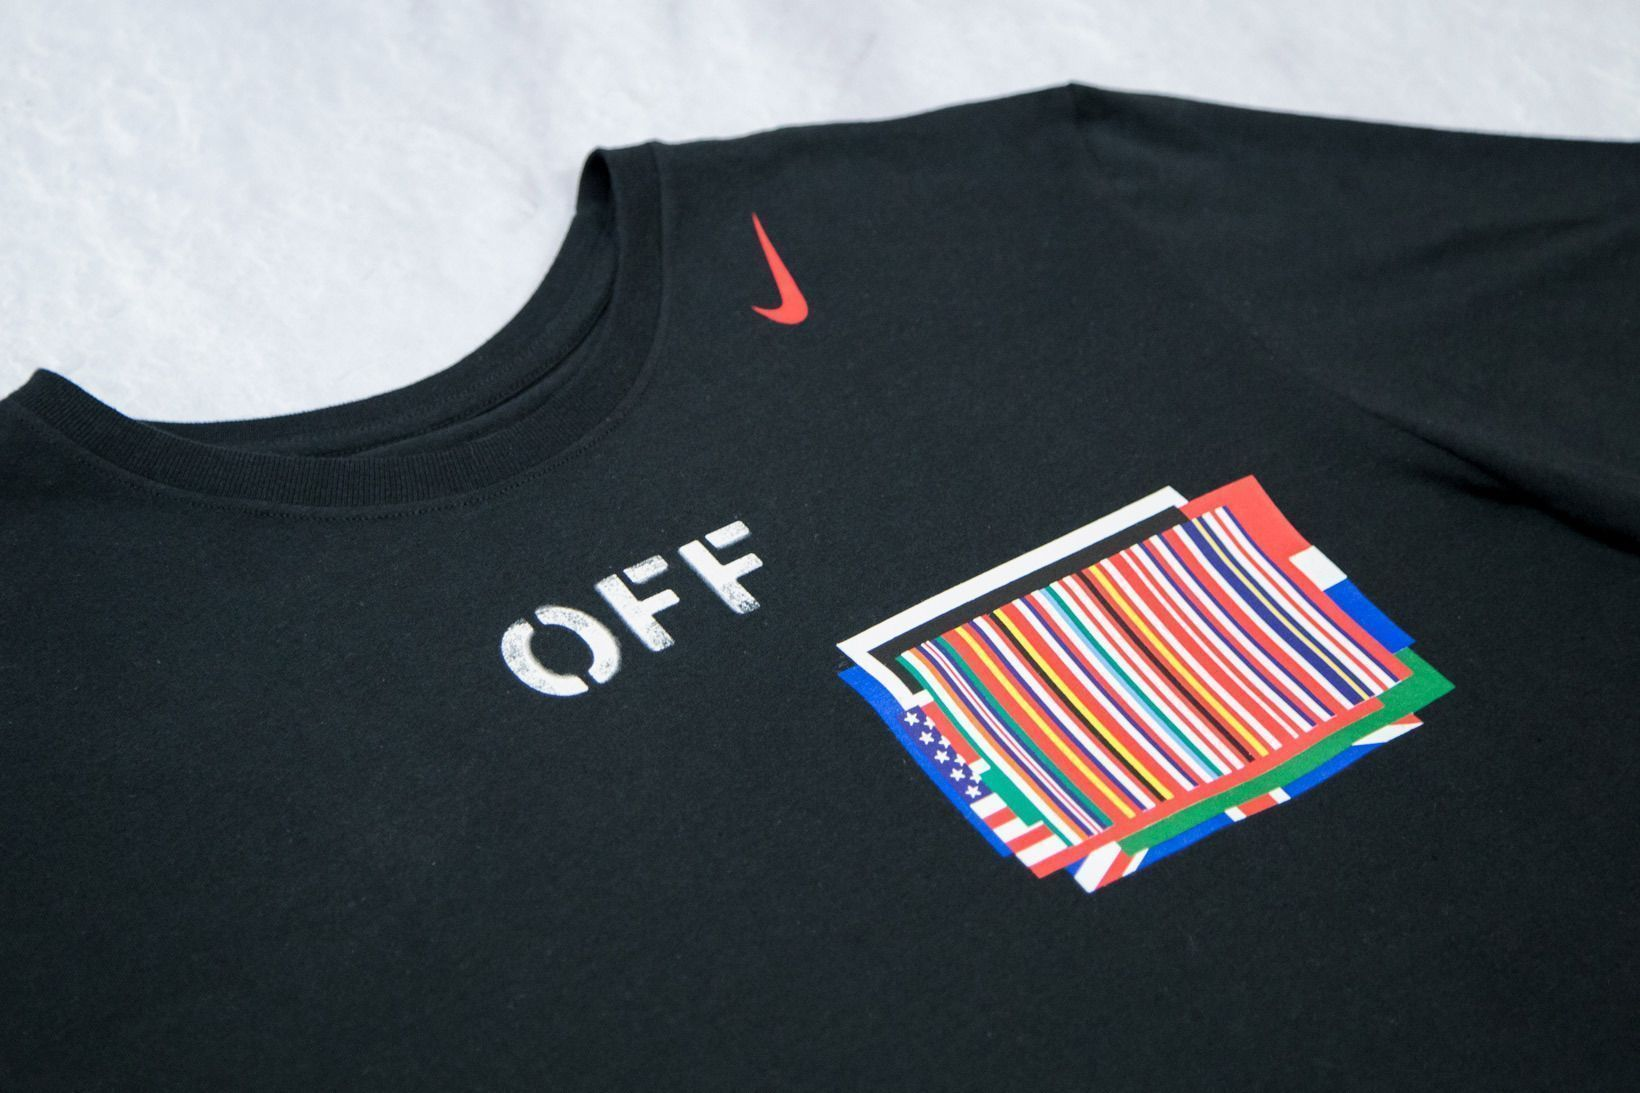 Off White x Nike - Equality Tee